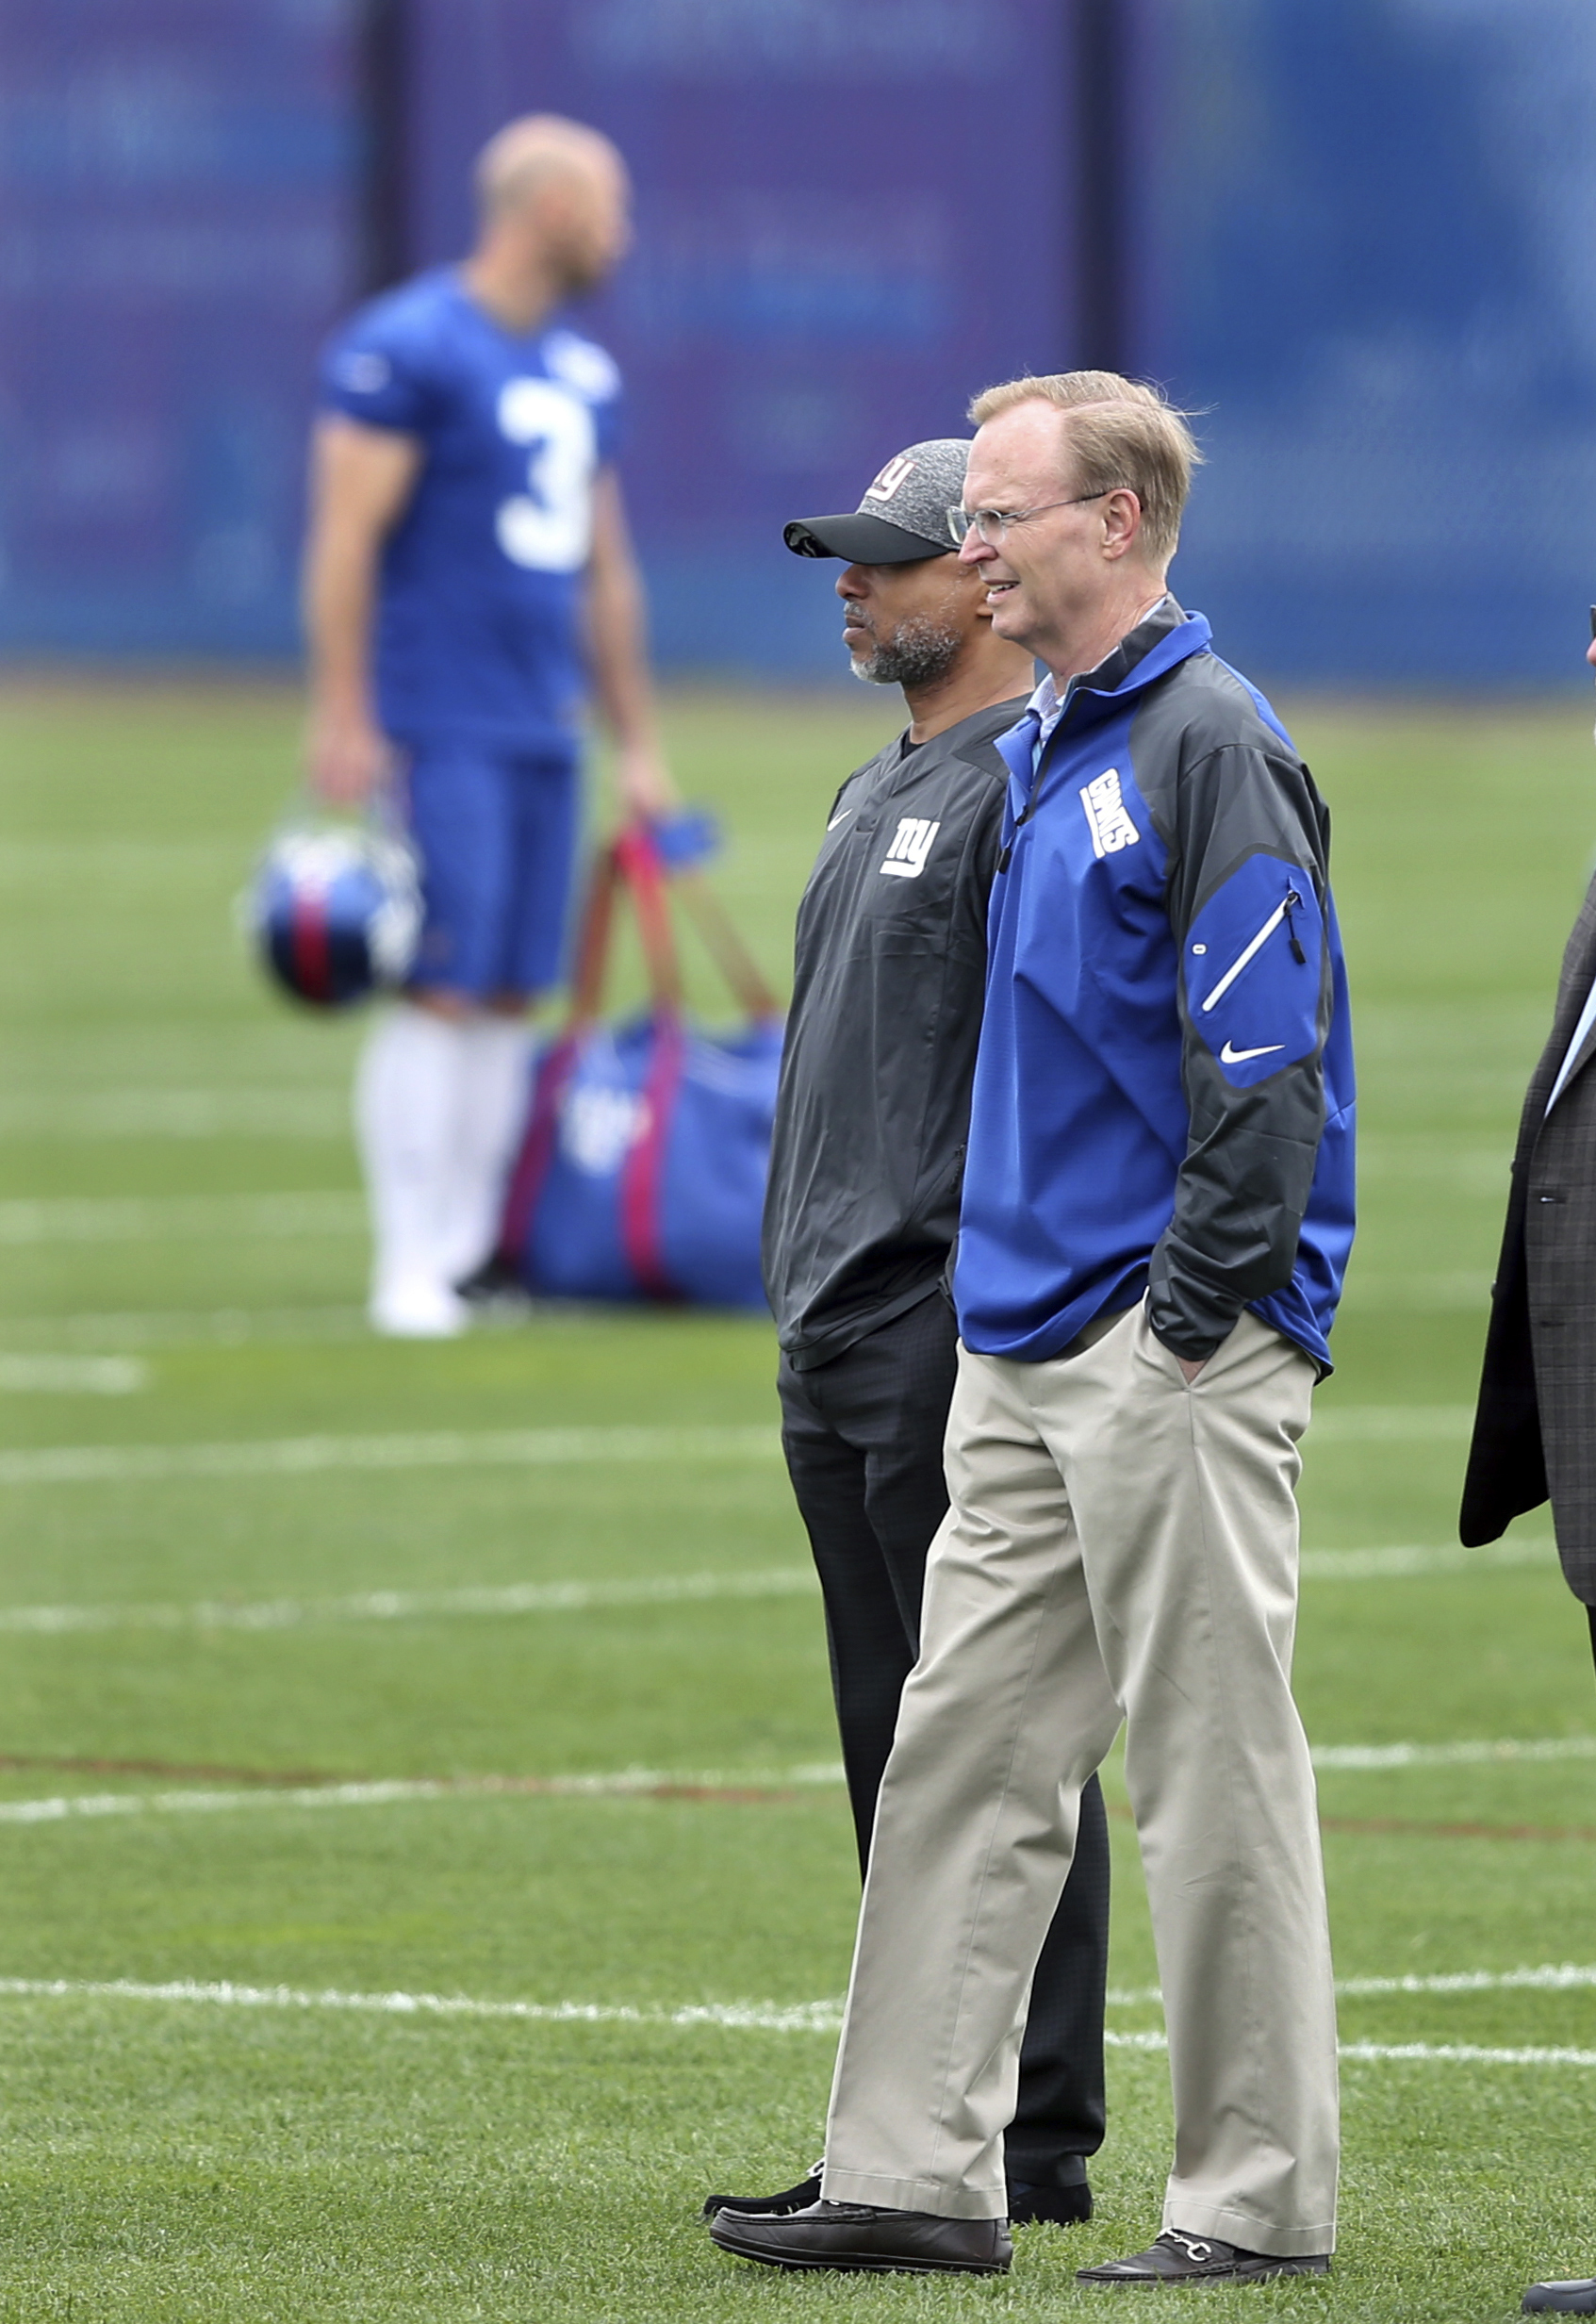 New York Giants co-owner John Mara, right, stands on the field with general manager Jerry Reese as they watch an NFL football minicamp Wednesday, April 27, 2016, in East Rutherford, N.J. (AP Photo/Mel Evans)